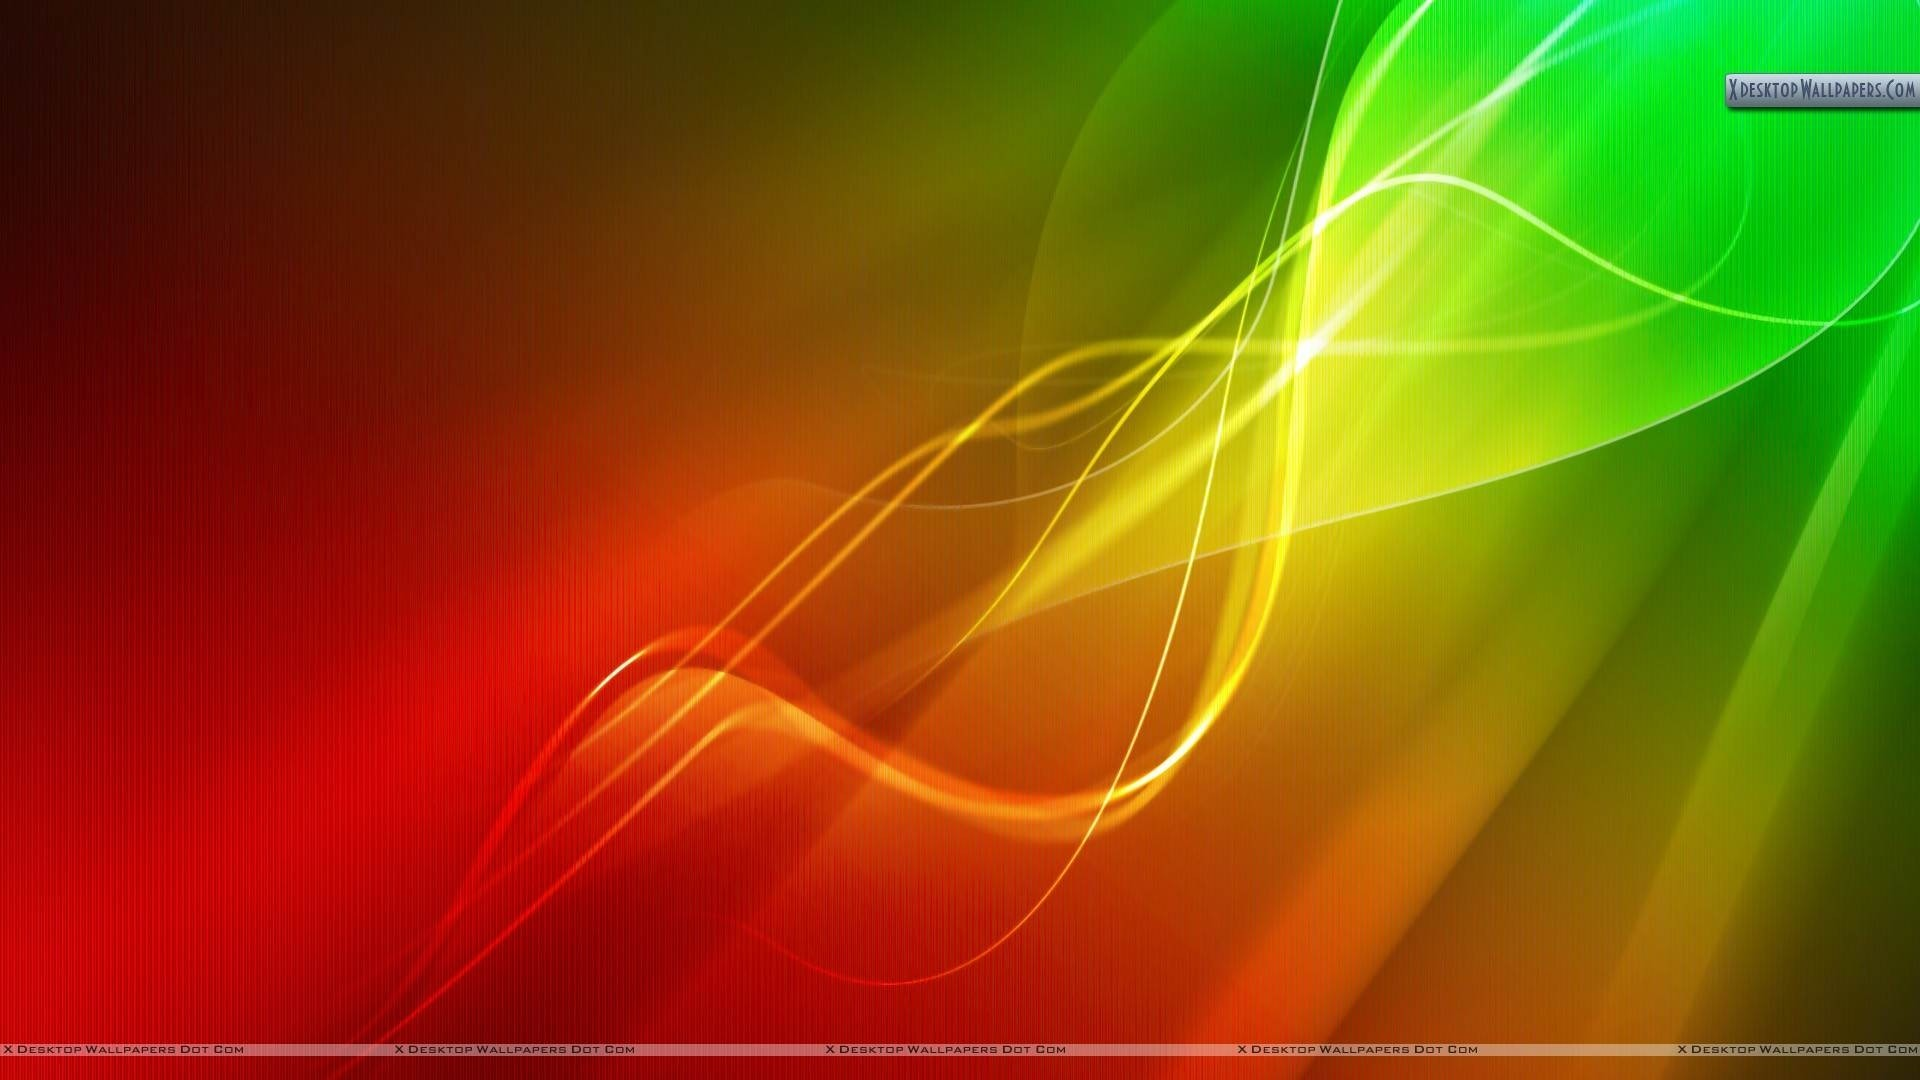 Wallpapers Backgrounds – Black abstract green lights red wallpaper desktop  white